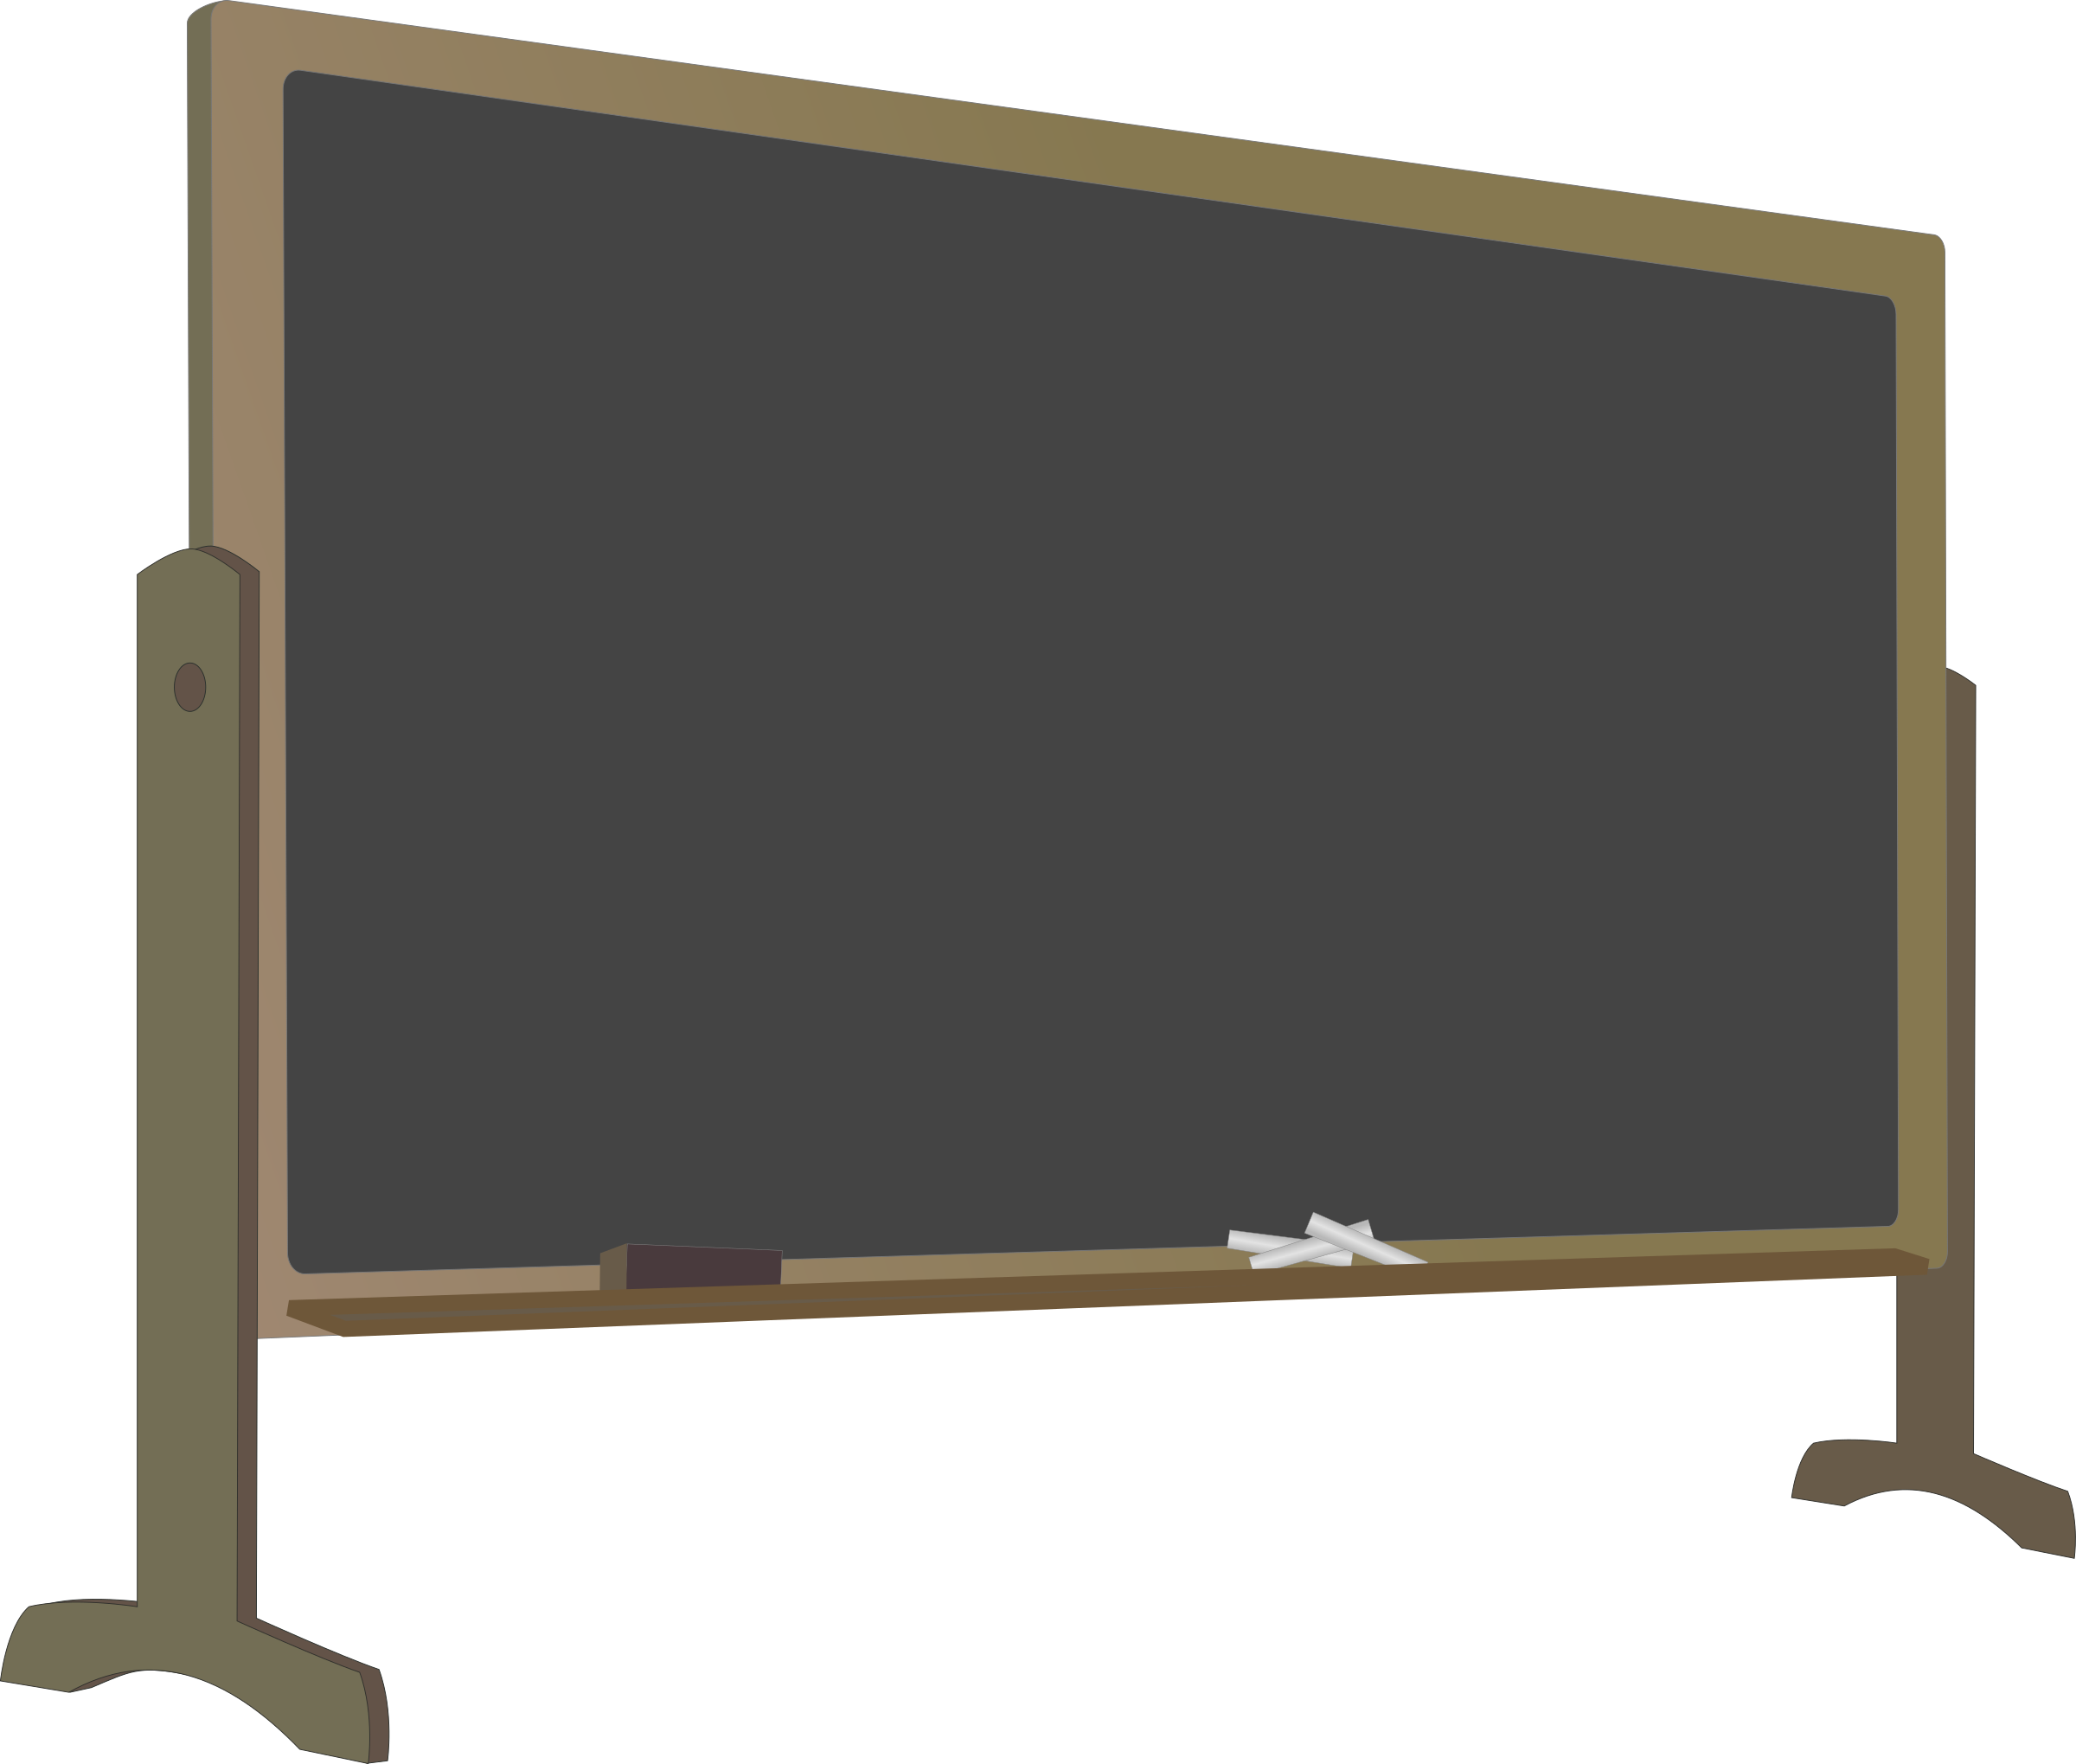 Blackboard with eraser and chalk png. Stand icons free downloads